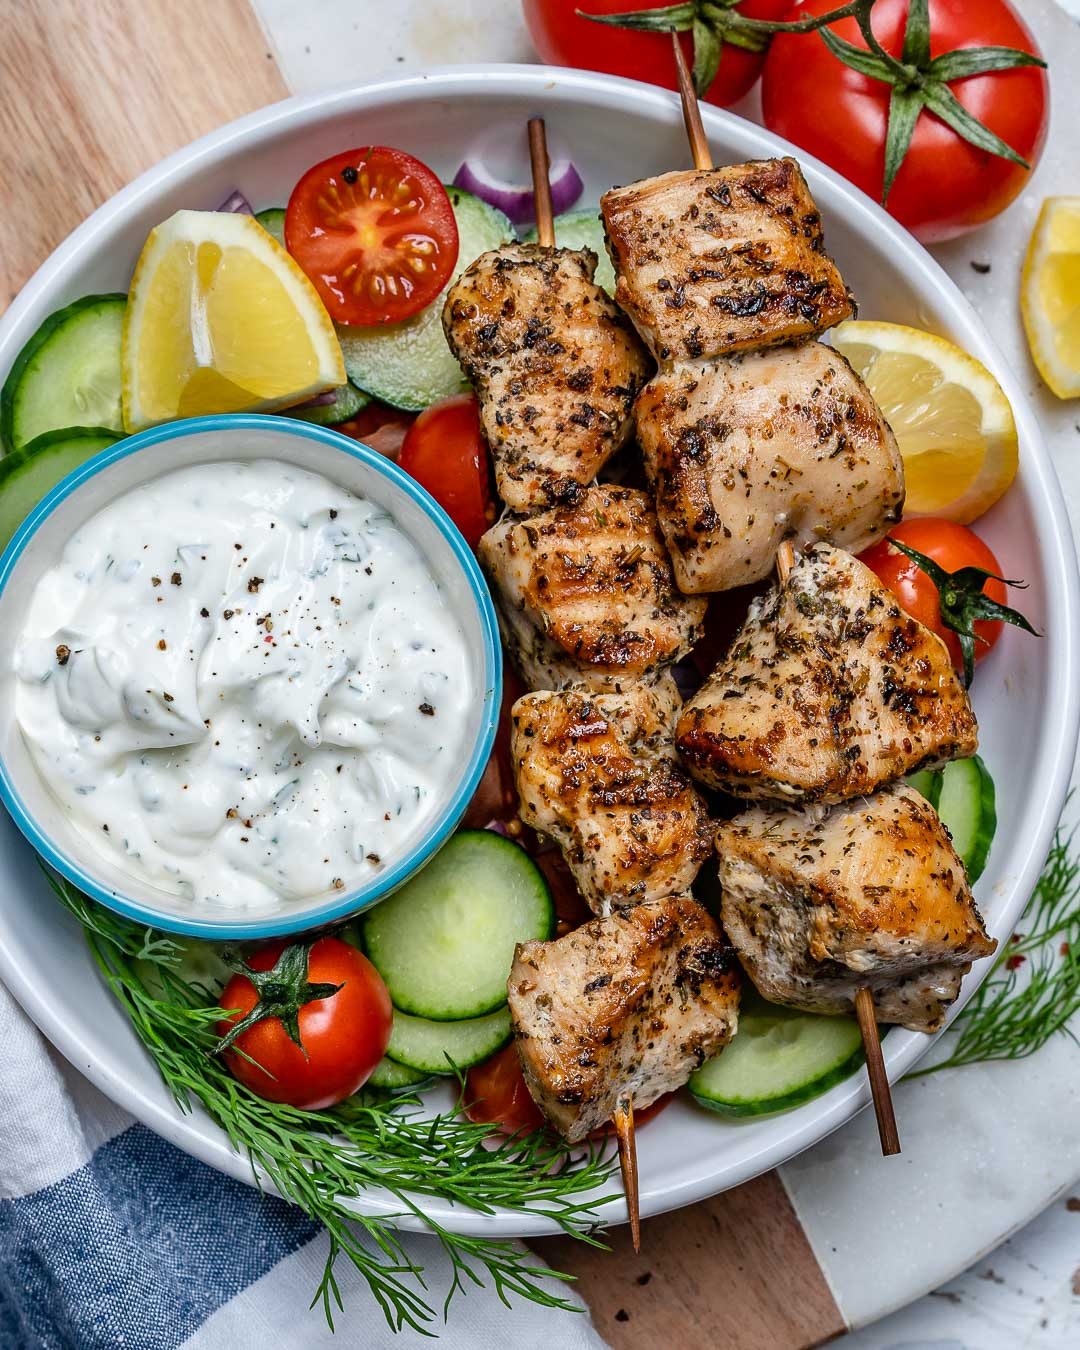 Grilled Chicken Skewers Homemade Tzatziki Are Bbq Perfection